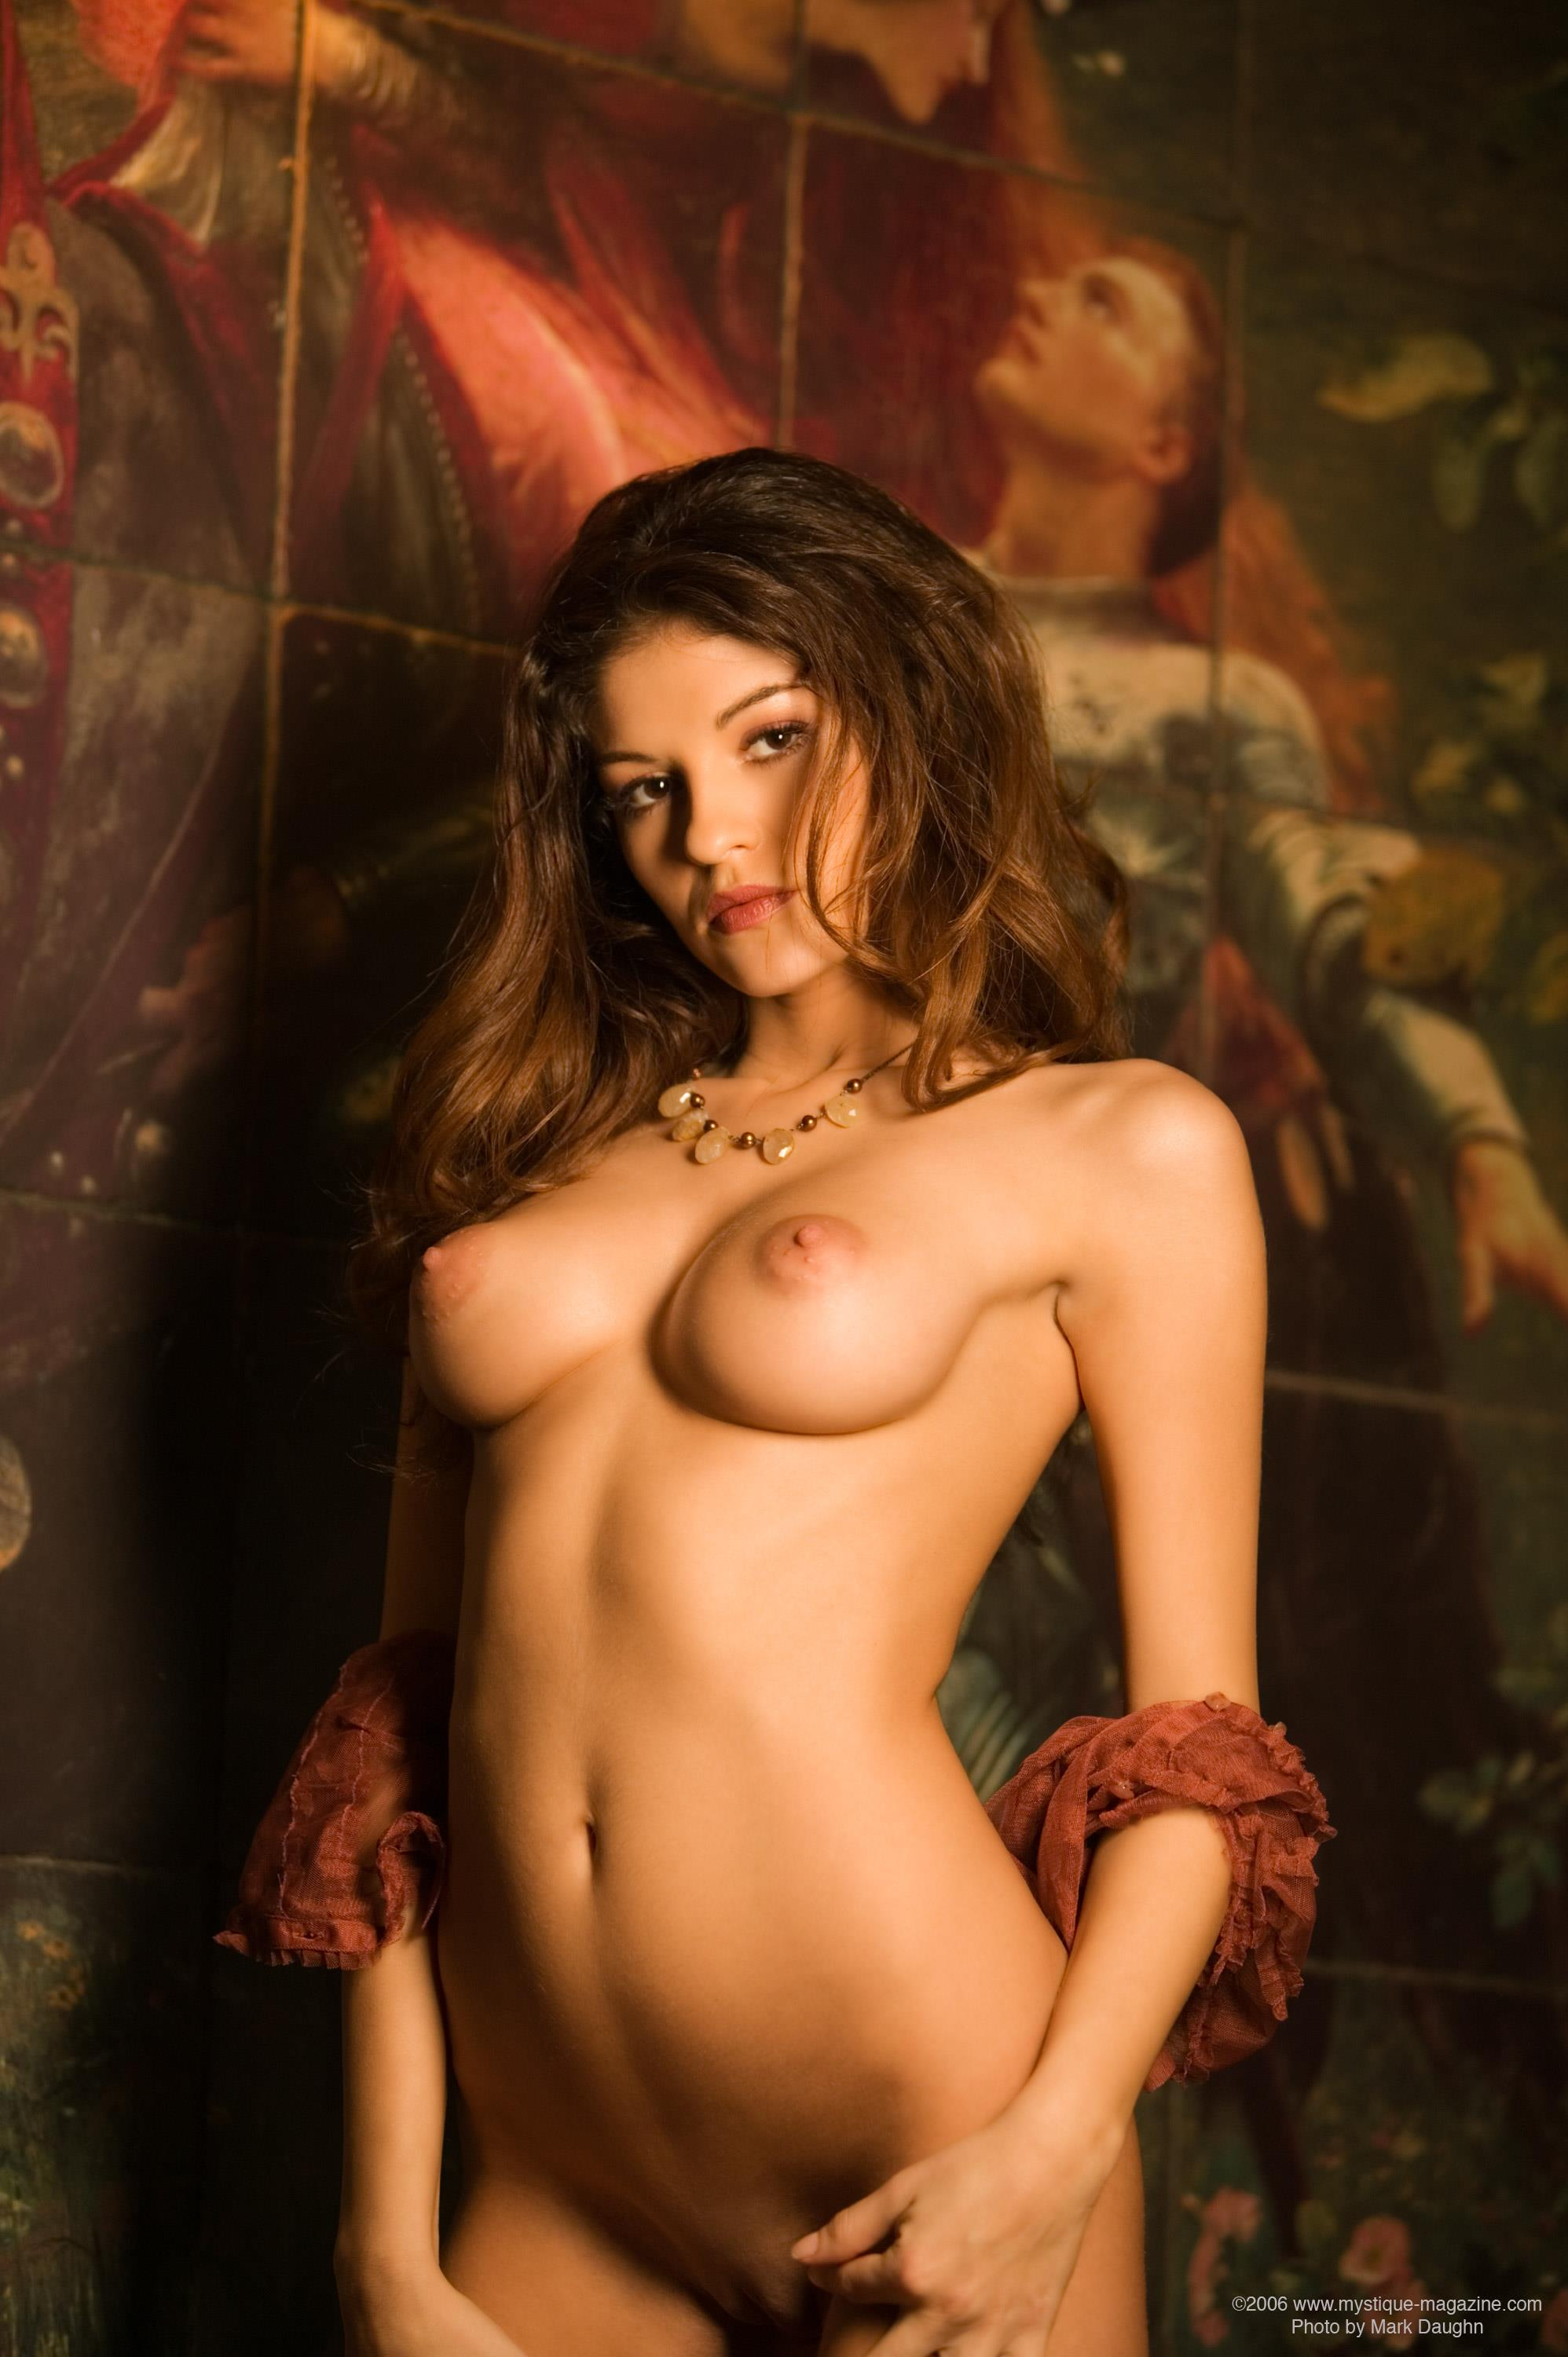 Andrea Marin Desnuda andrea marin nude - 63 pictures: rating 9.20/10